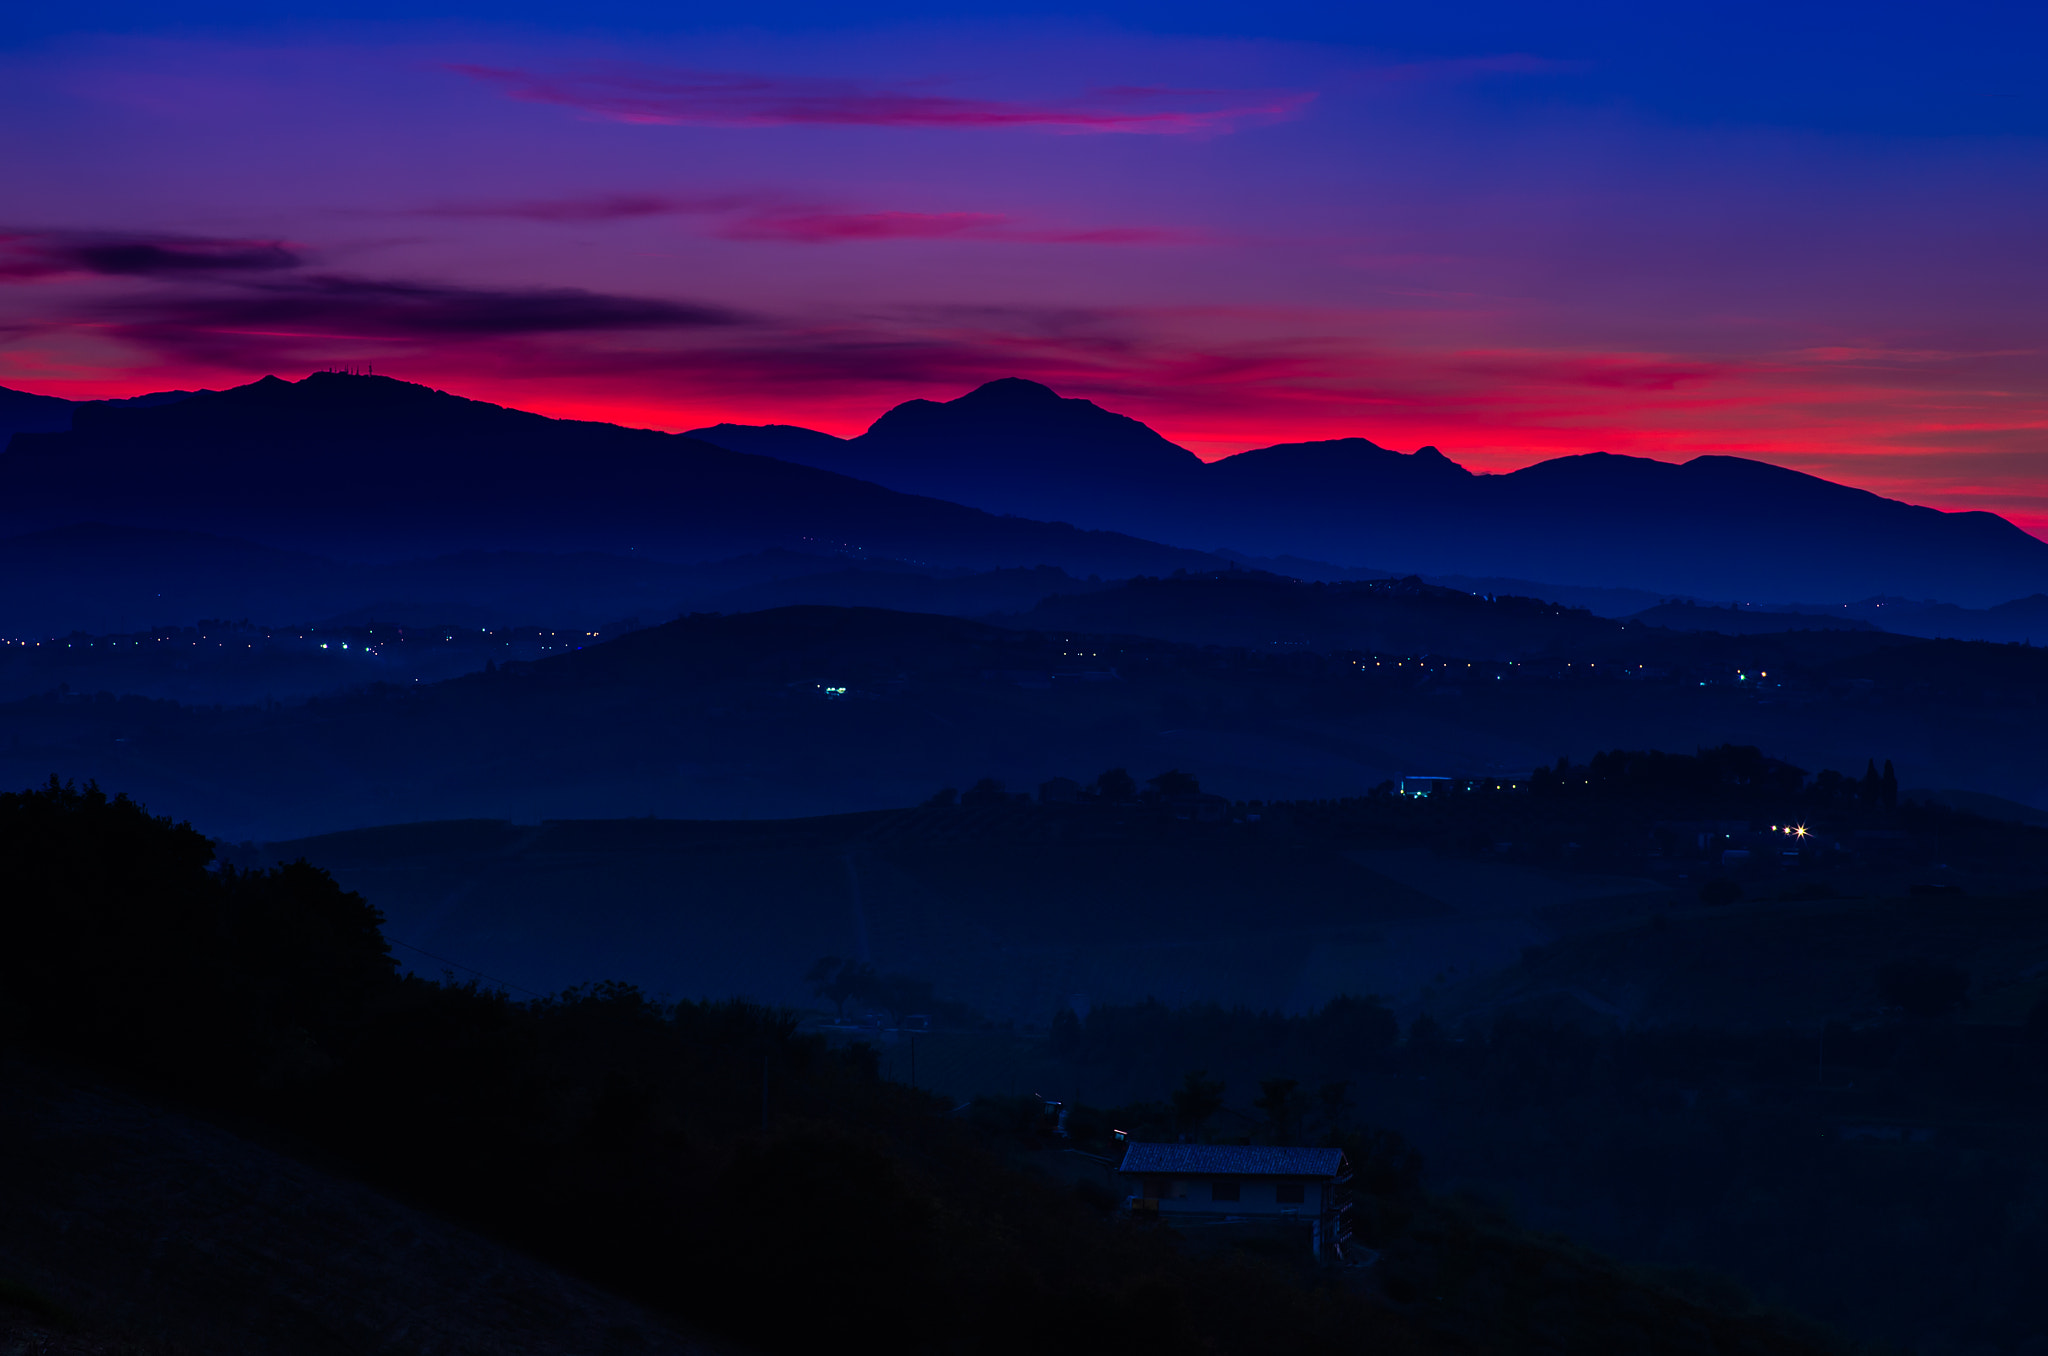 Photograph Red vs Blue by Teus Renes on 500px